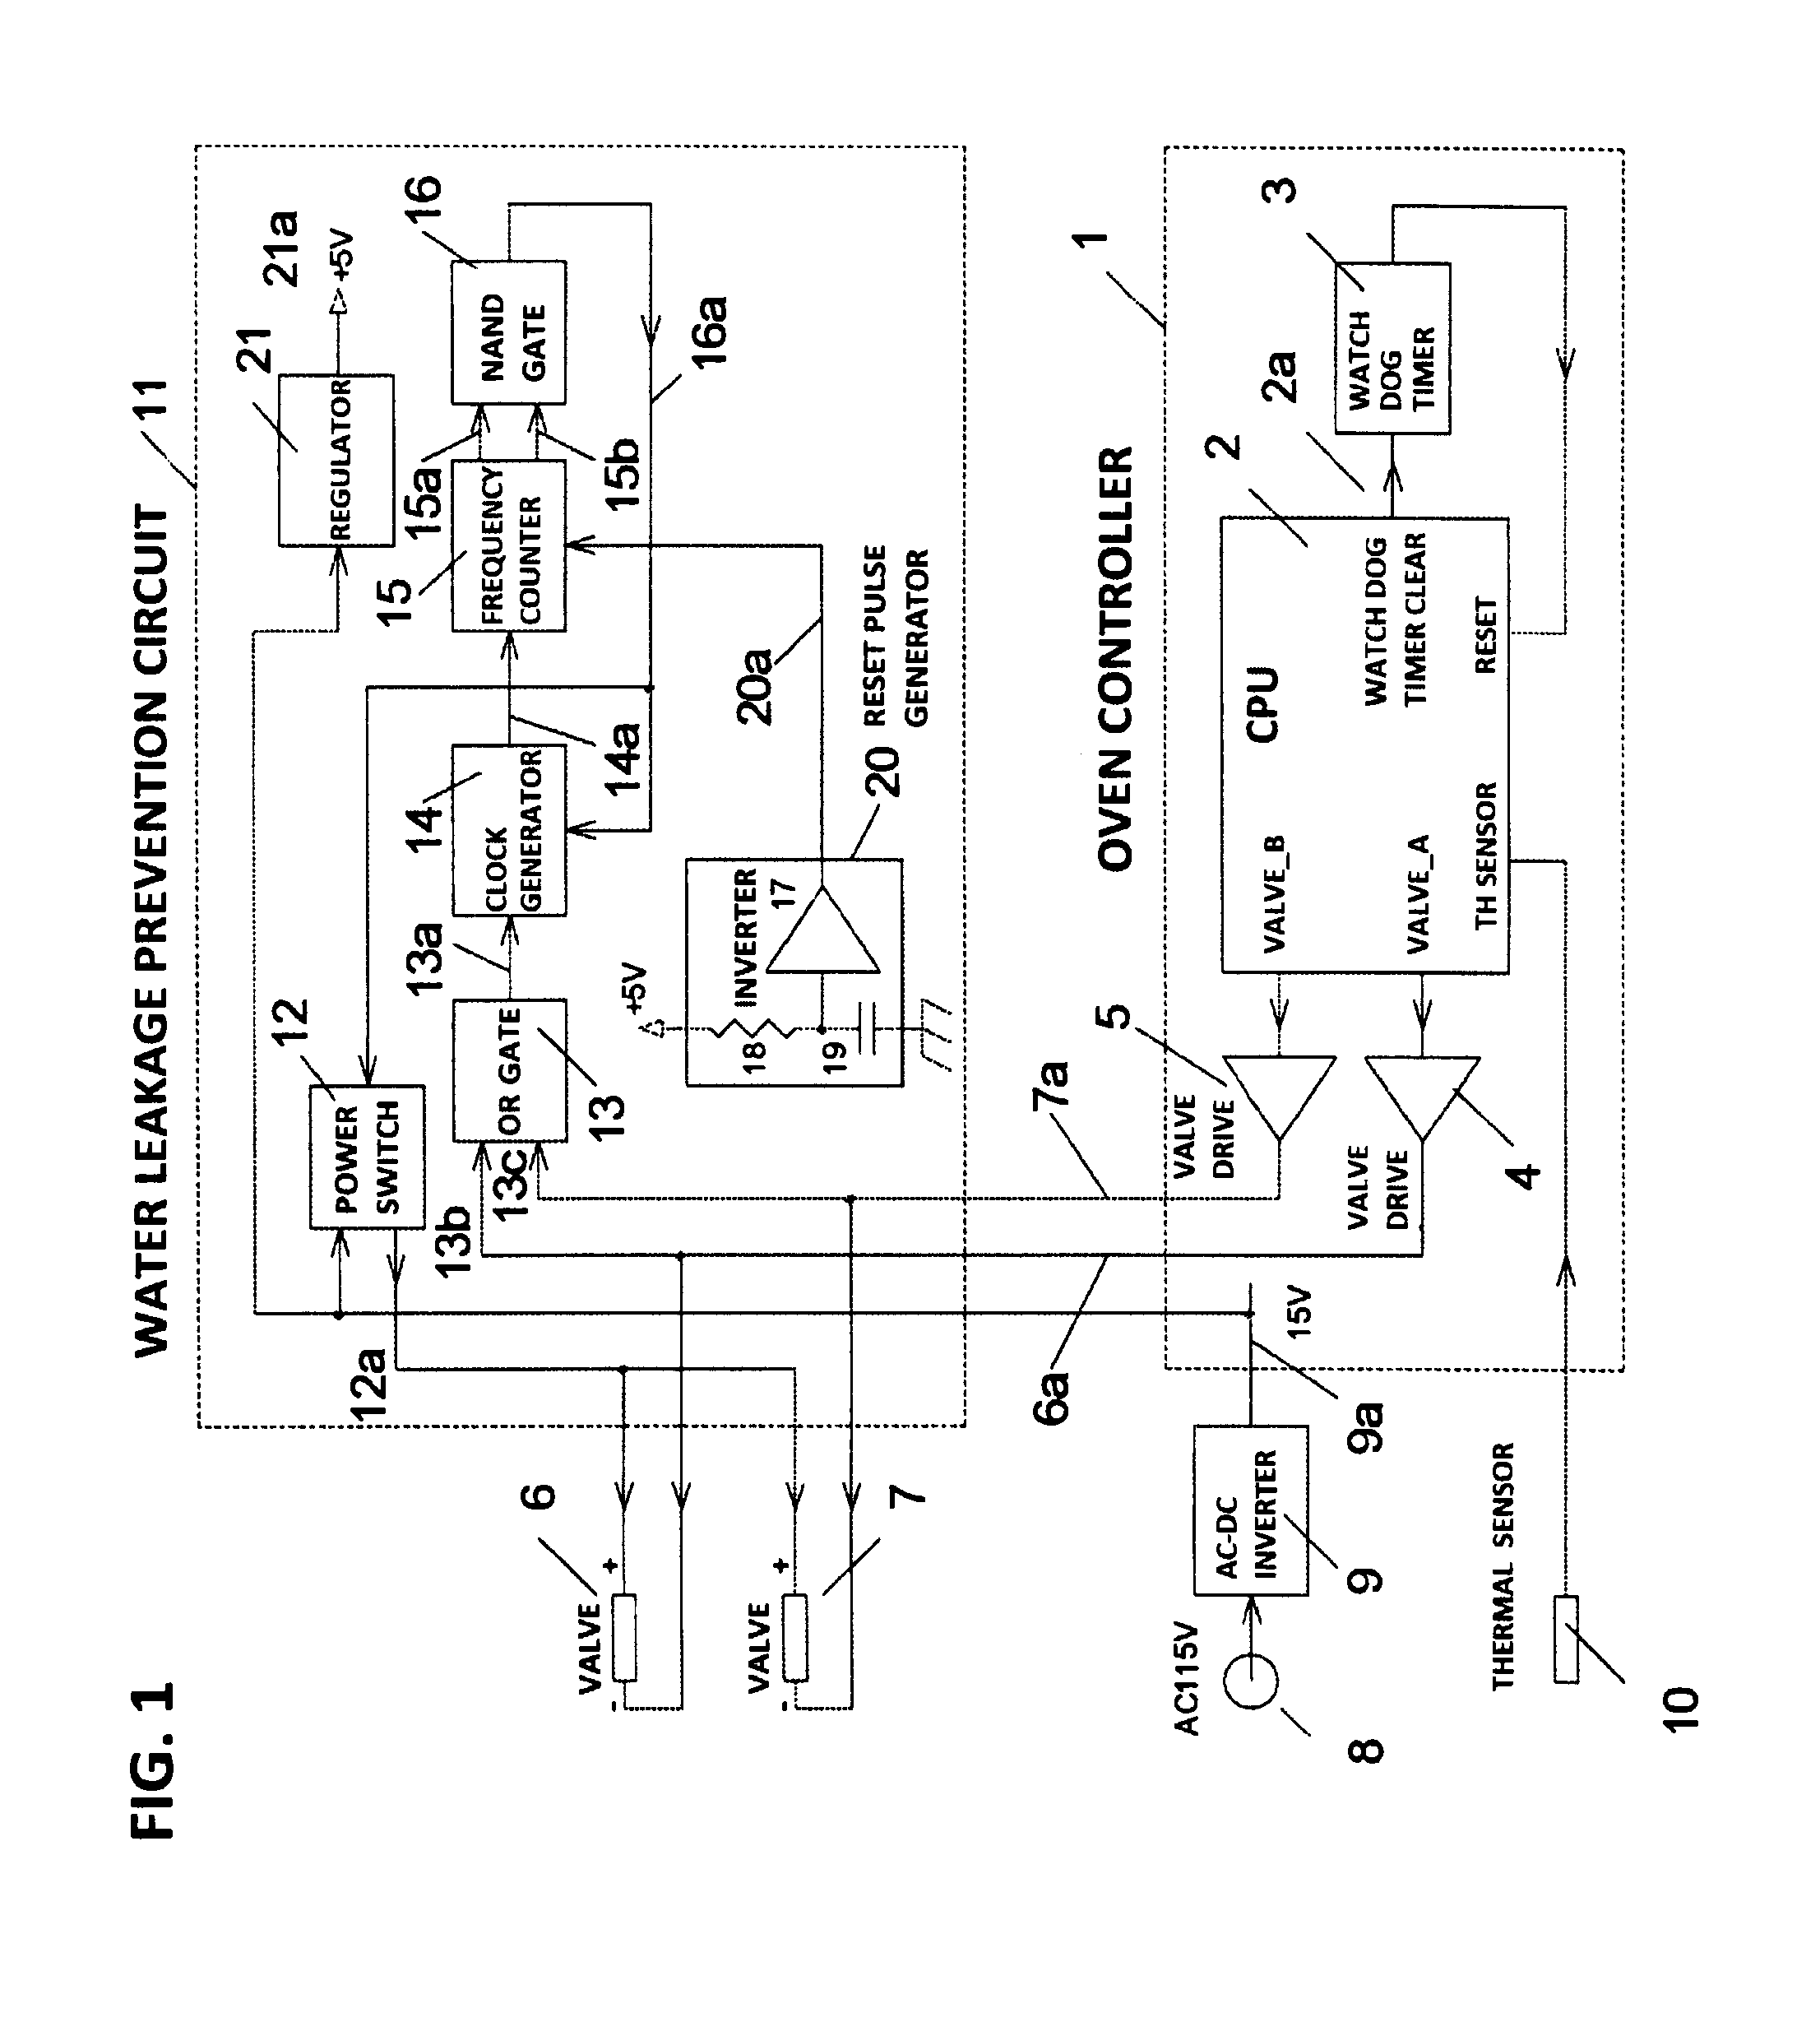 Patente Us20120160111 Steam Oven For Aircraft Google Patentes Solenoid Valve Schematic All Lee Valves Can Be Patent Drawing